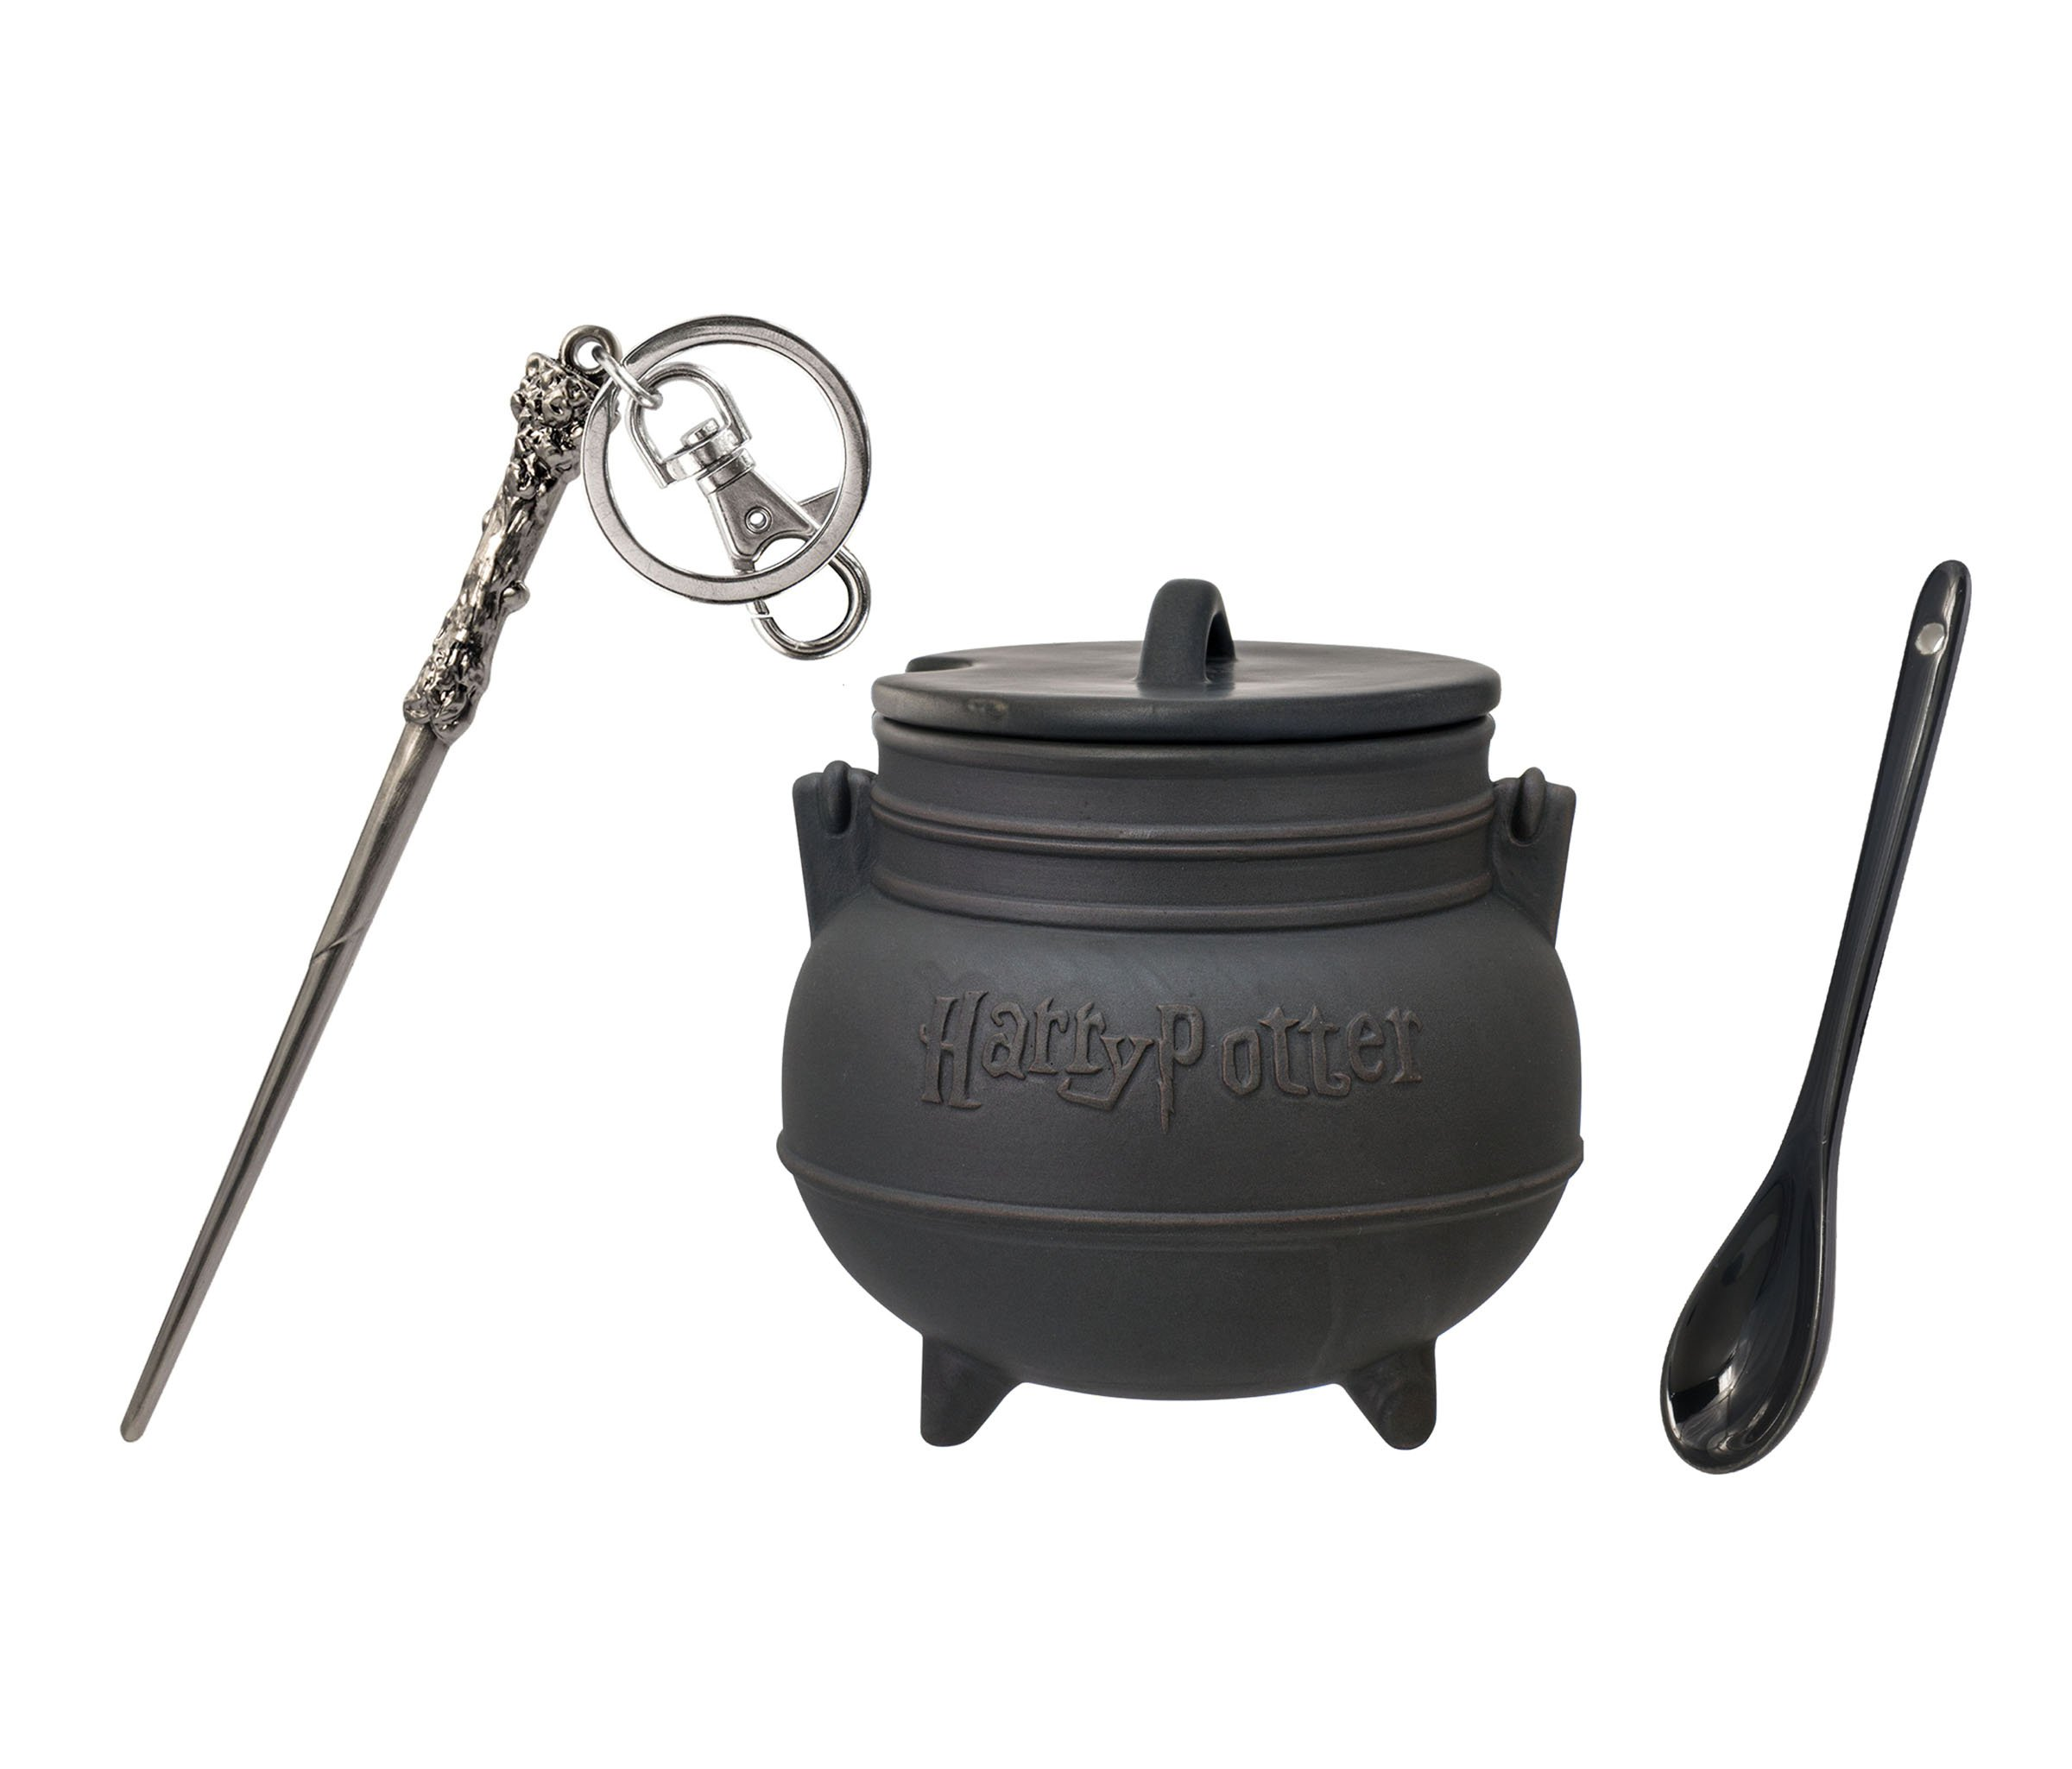 Mozlly Value Pack - Harry Potter Black Cauldron Ceramic Soup Mug with Spoon (3pc Set) AND Harrys Wand Pewter Key Chain - Novelty Character Accessories - Item #K124014-124010